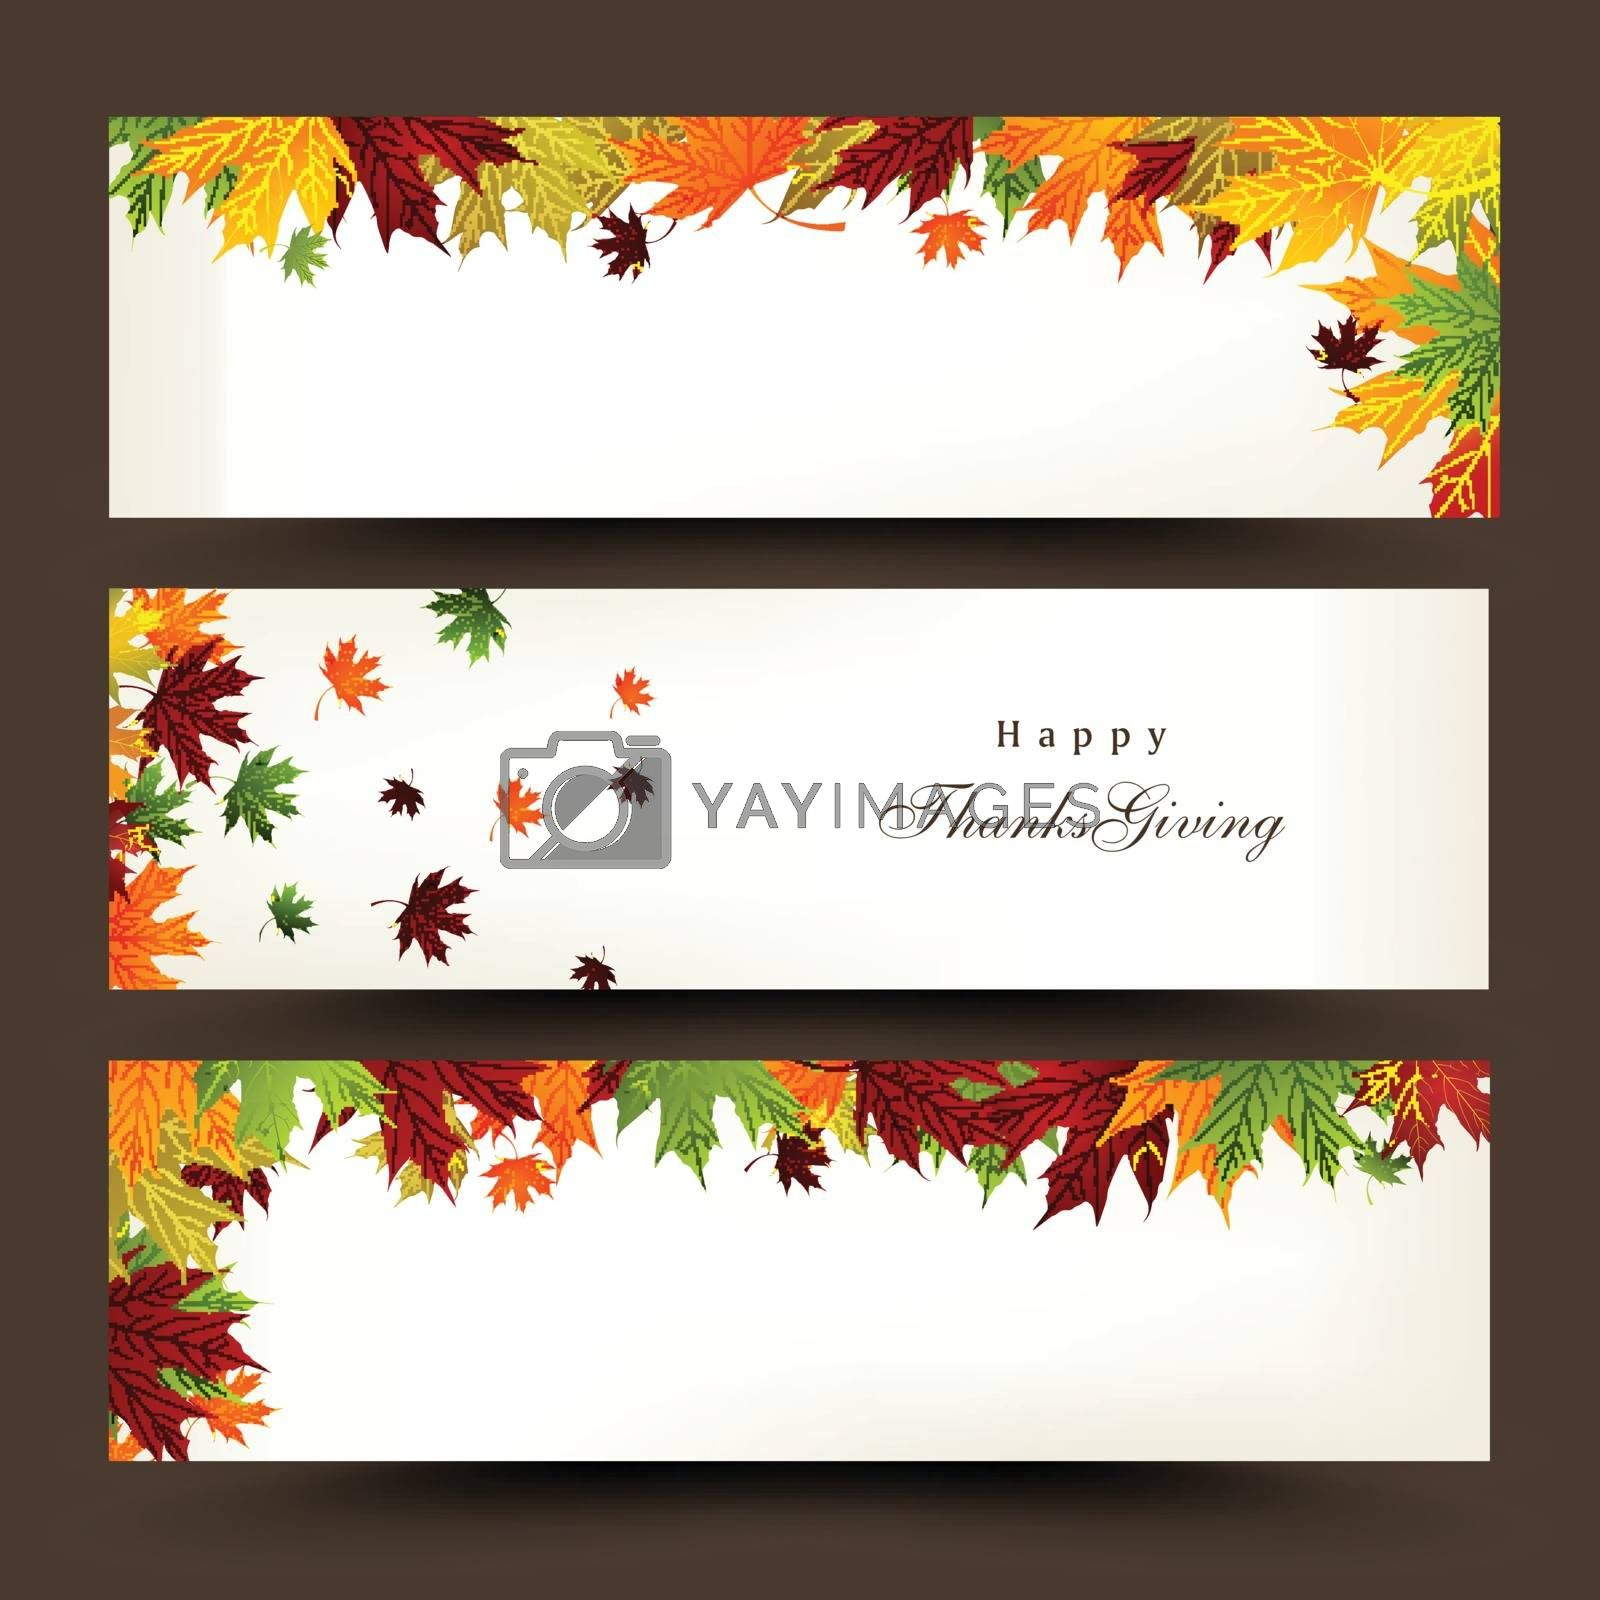 Creative website header or banner set decorated with colorful maple leaves for Happy Thanksgiving Day celebration.